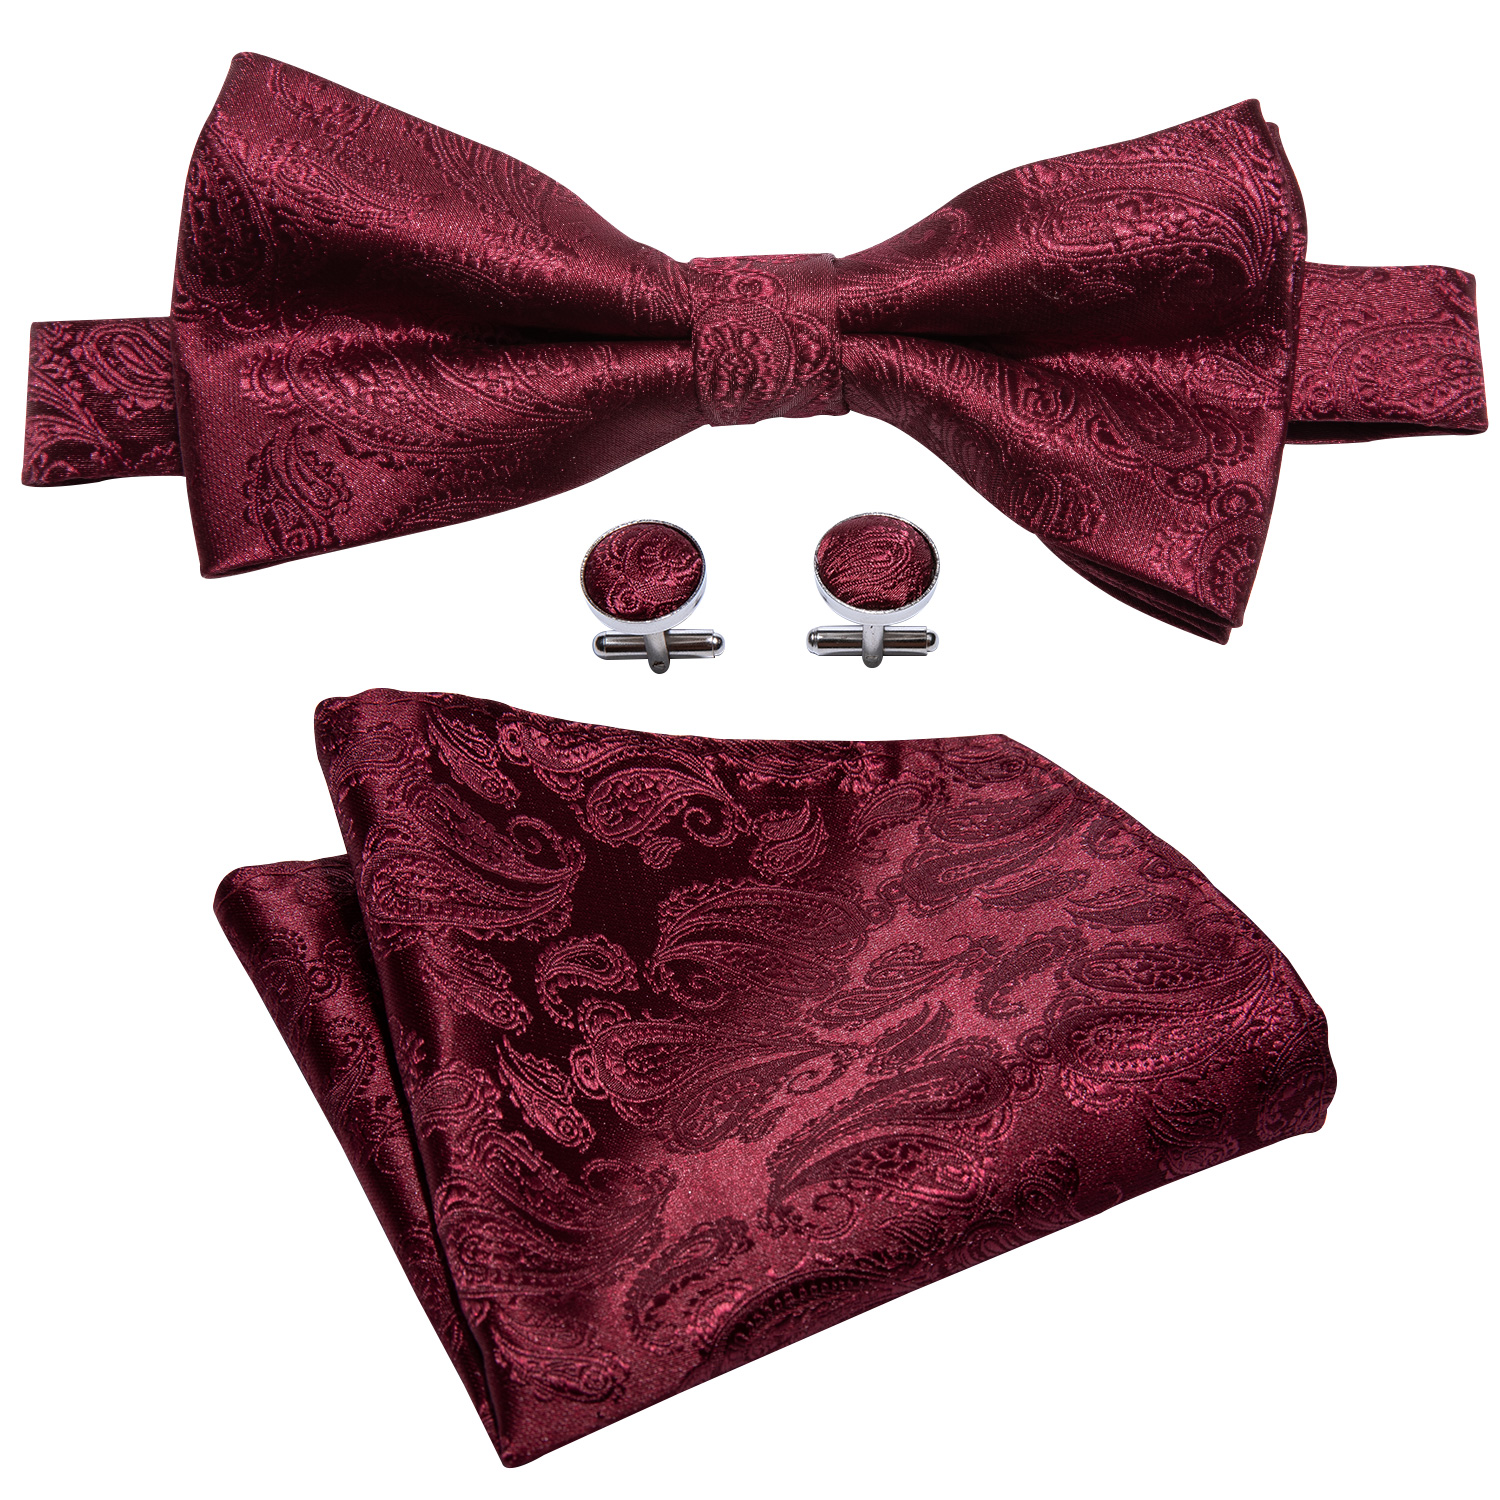 100% Silk Men Red Bow Tie Set For Wedding Floral Paisley Bows Handky Cufflinks Pre-Tied Bowtie Adjustable Necktie Barry.Wang